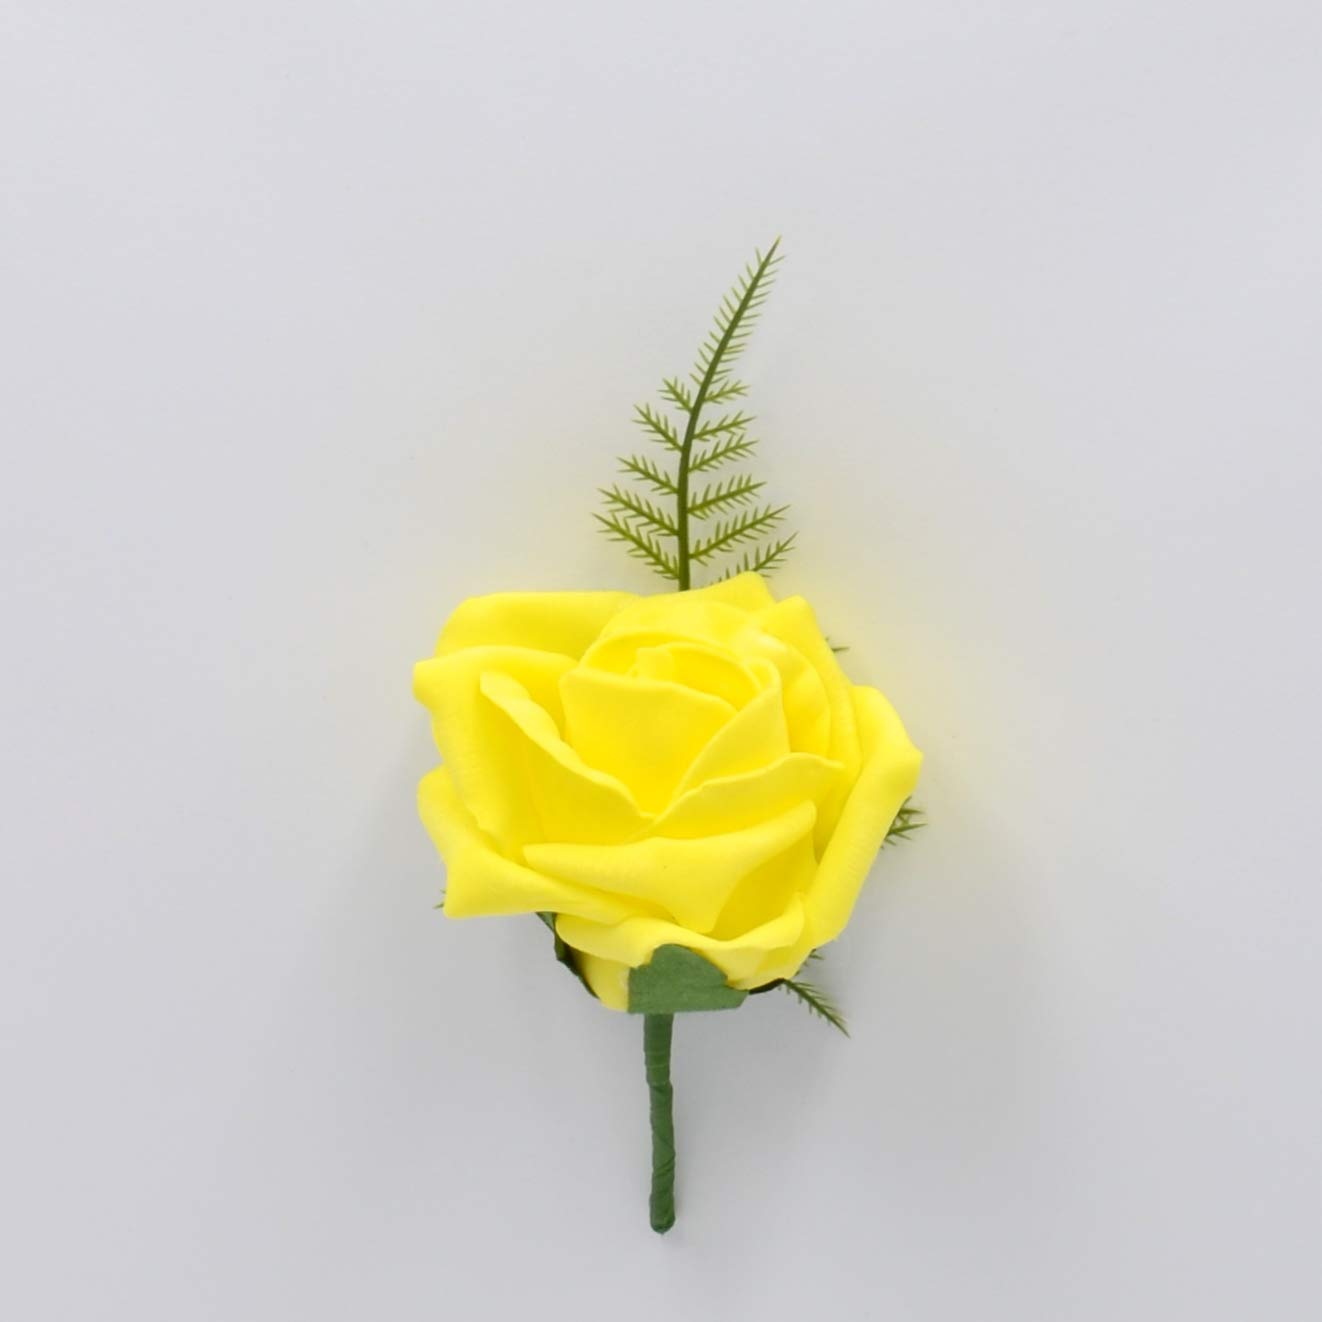 Artificial Wedding Flowers Hand-Made by Petals Polly, Foam Rose Buttonhole in Yellow PETALS POLLY FLOWERS